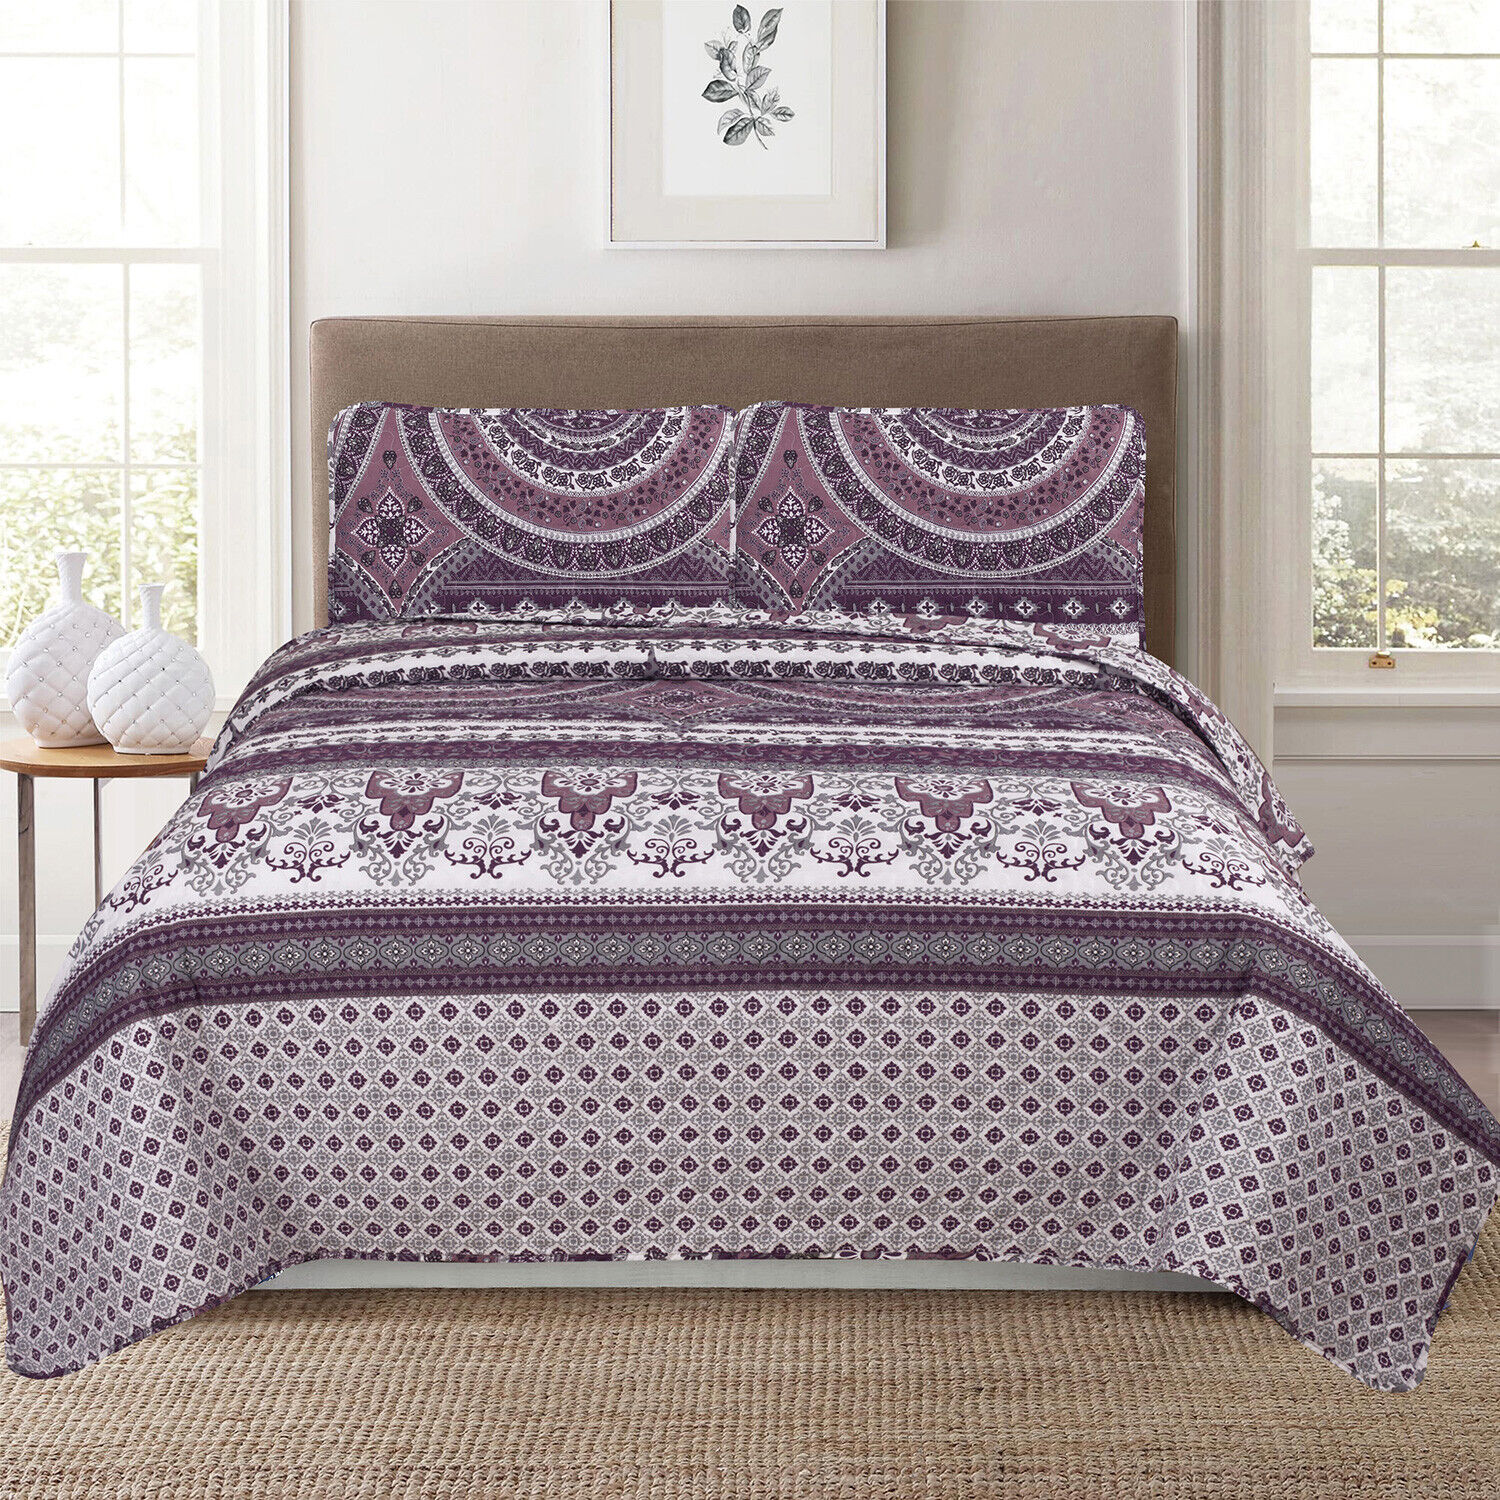 Full/Queen or King Damask Medallion 3-Piece Quilt Bedding Set, Purple and White Bedding